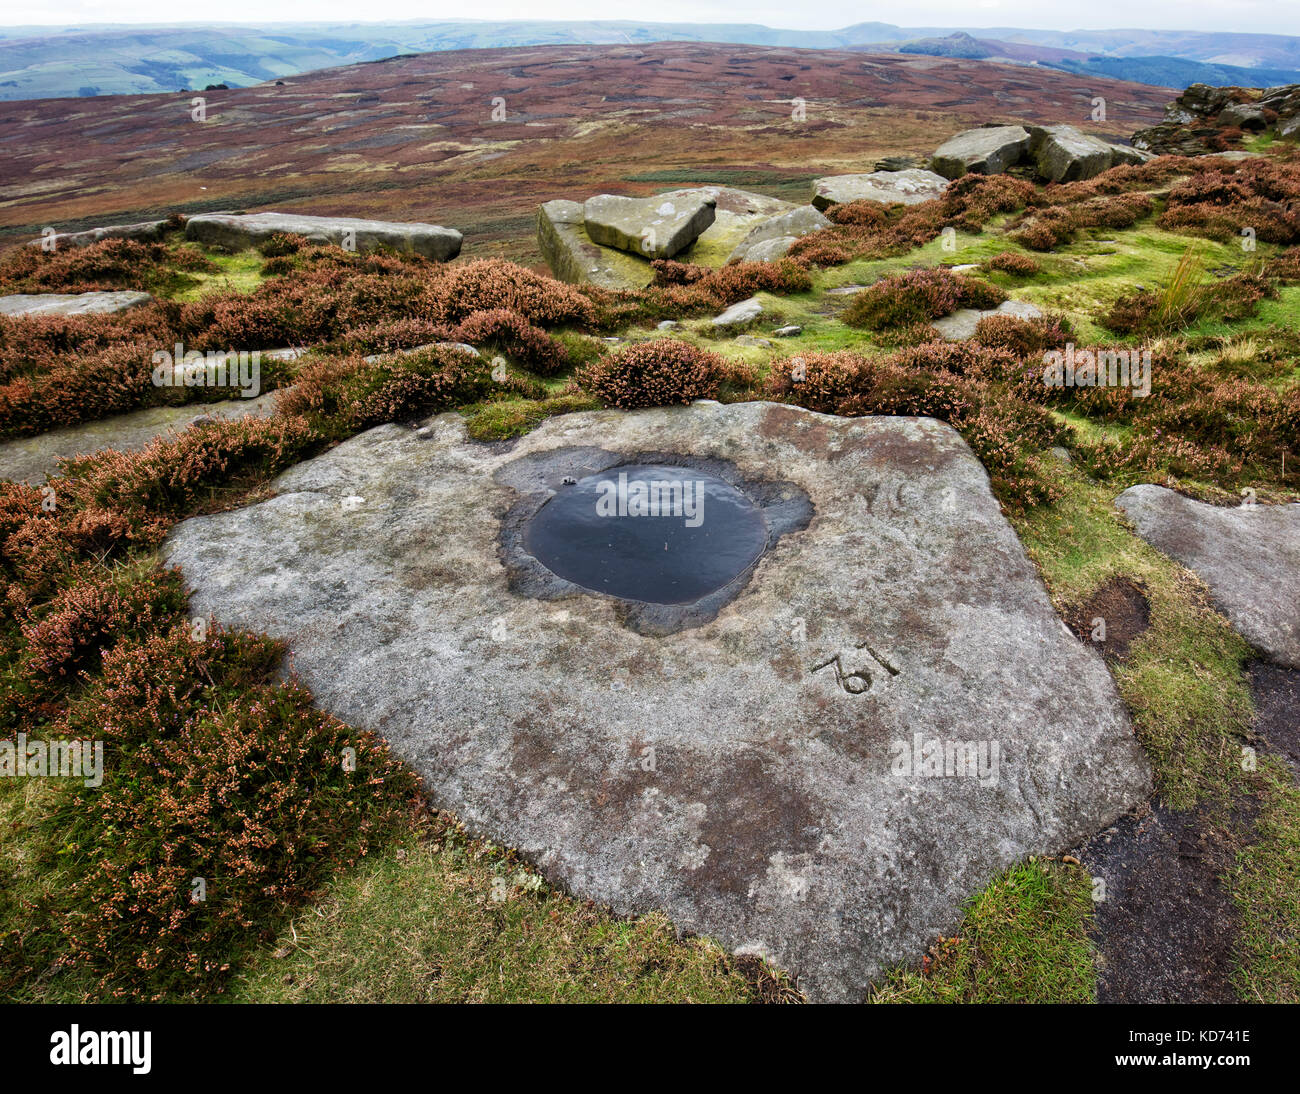 Numbered carved rock basin on Stanage Edge near Hathersage in the Derbyshire Peak District - made to supply water - Stock Image